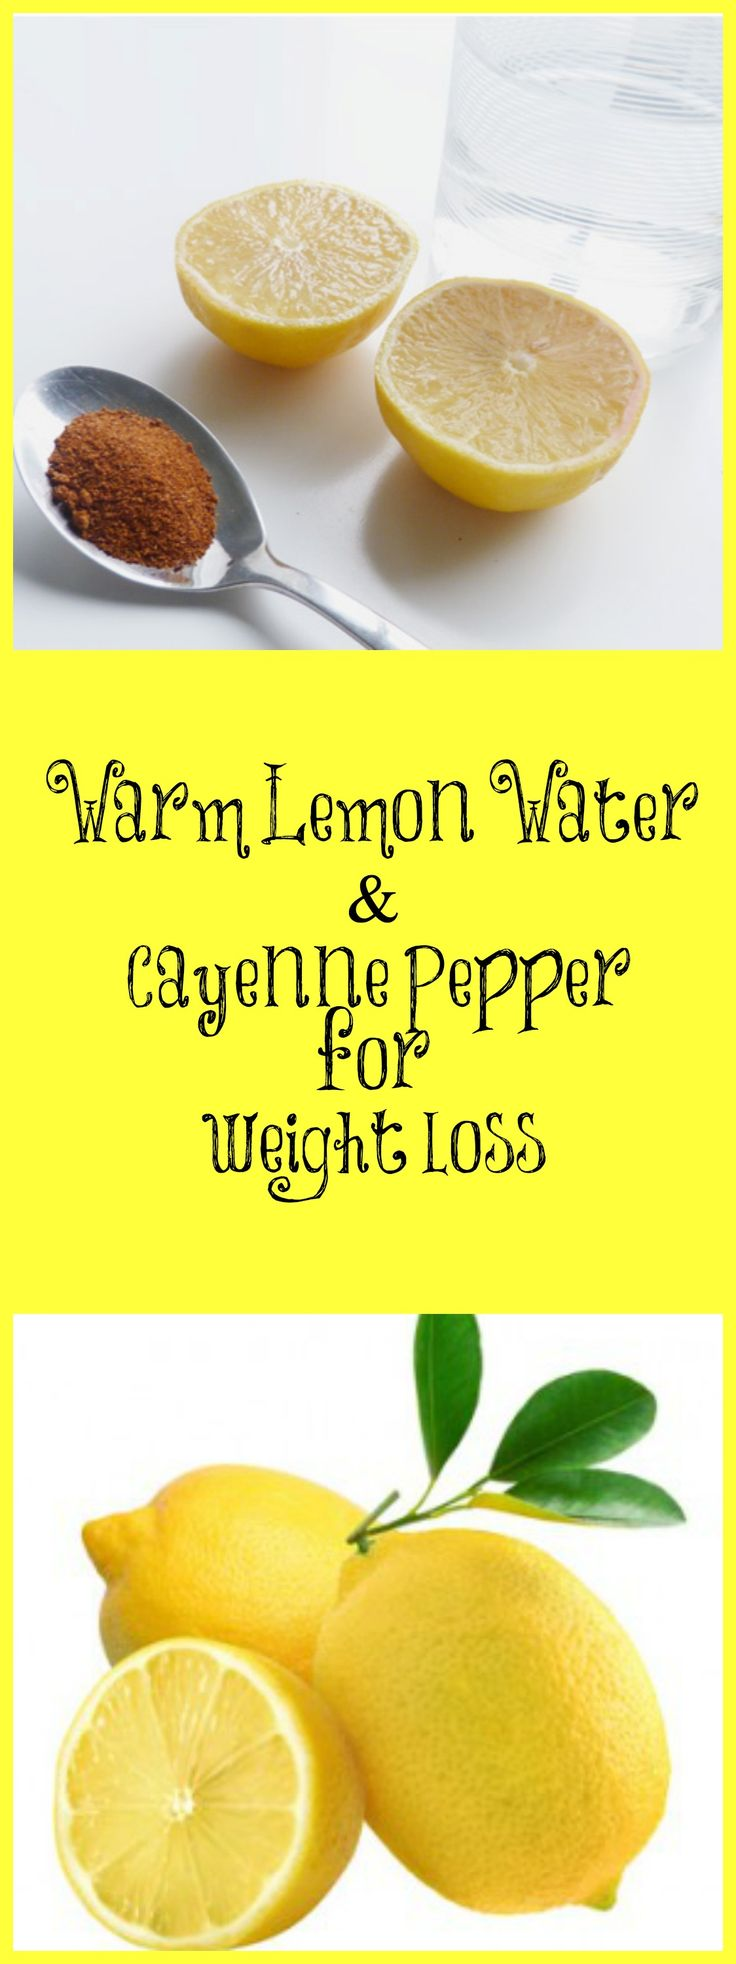 How warm lemon water and cayenne pepper can help with weight loss! Click image for full article